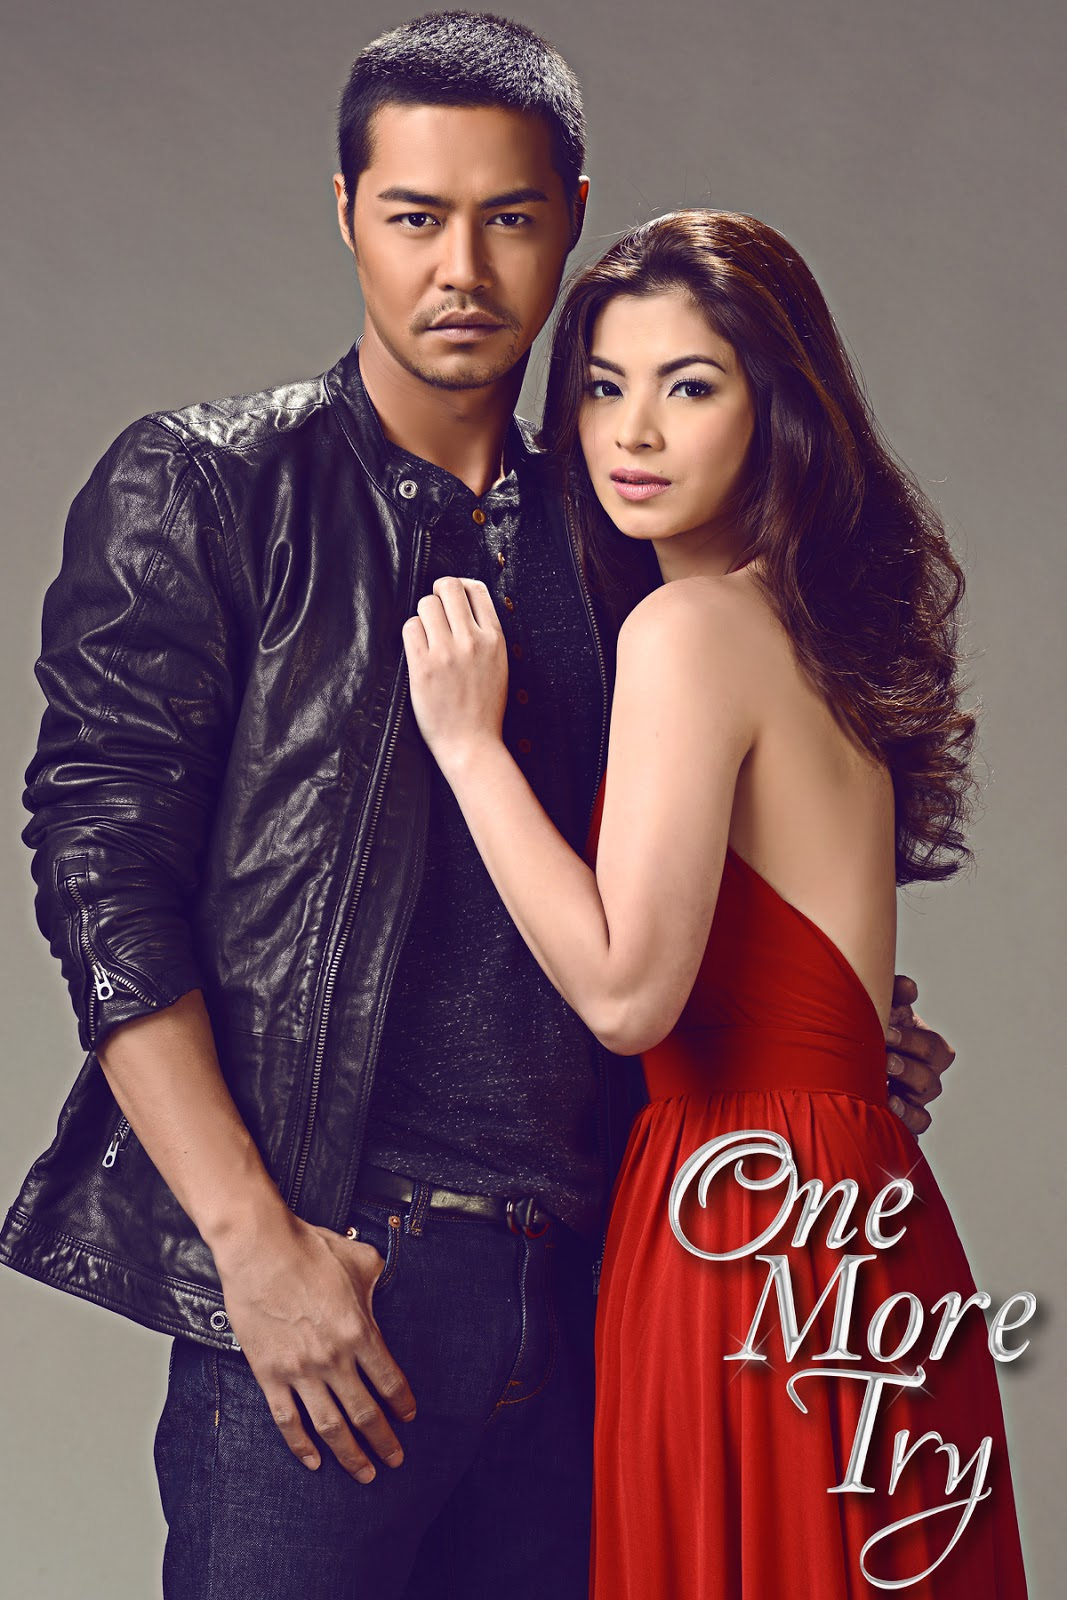 Angel Locsin and Aga Muhlachs Hit Movie In The Name of